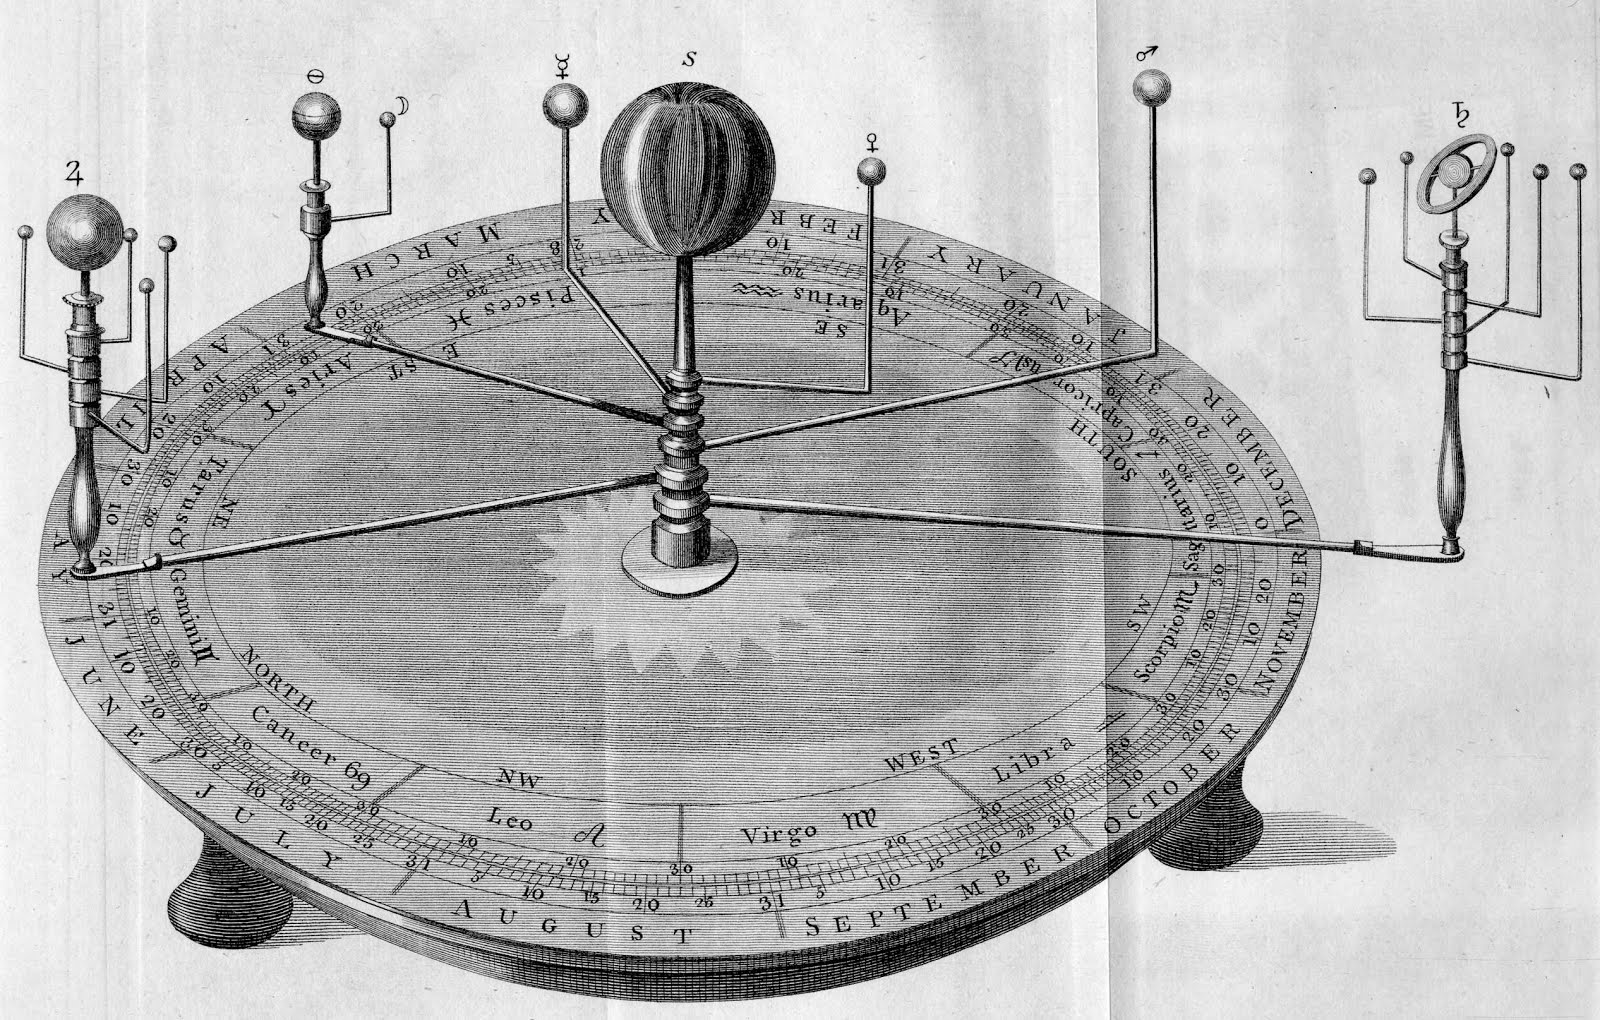 and if you get lost doing that, not to worry - here's an orrery